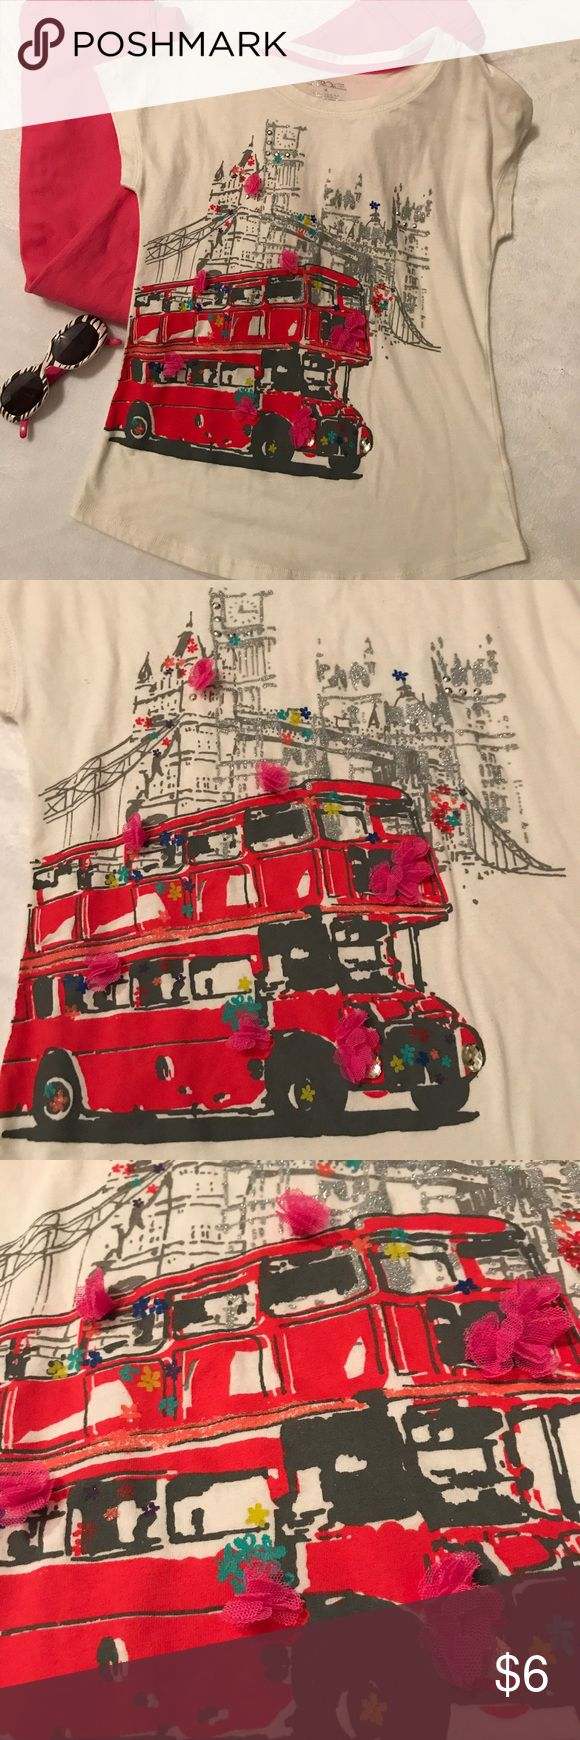 Girls sparkle tee Cherokee girls sparkle tee double decker London bus. 🚌 . Such a fun top for your sweet girl!! Size M in girls. Excellent condition and smoke free home ** pants for sale in another listing Cherokee Shirts & Tops Tees - Short Sleeve